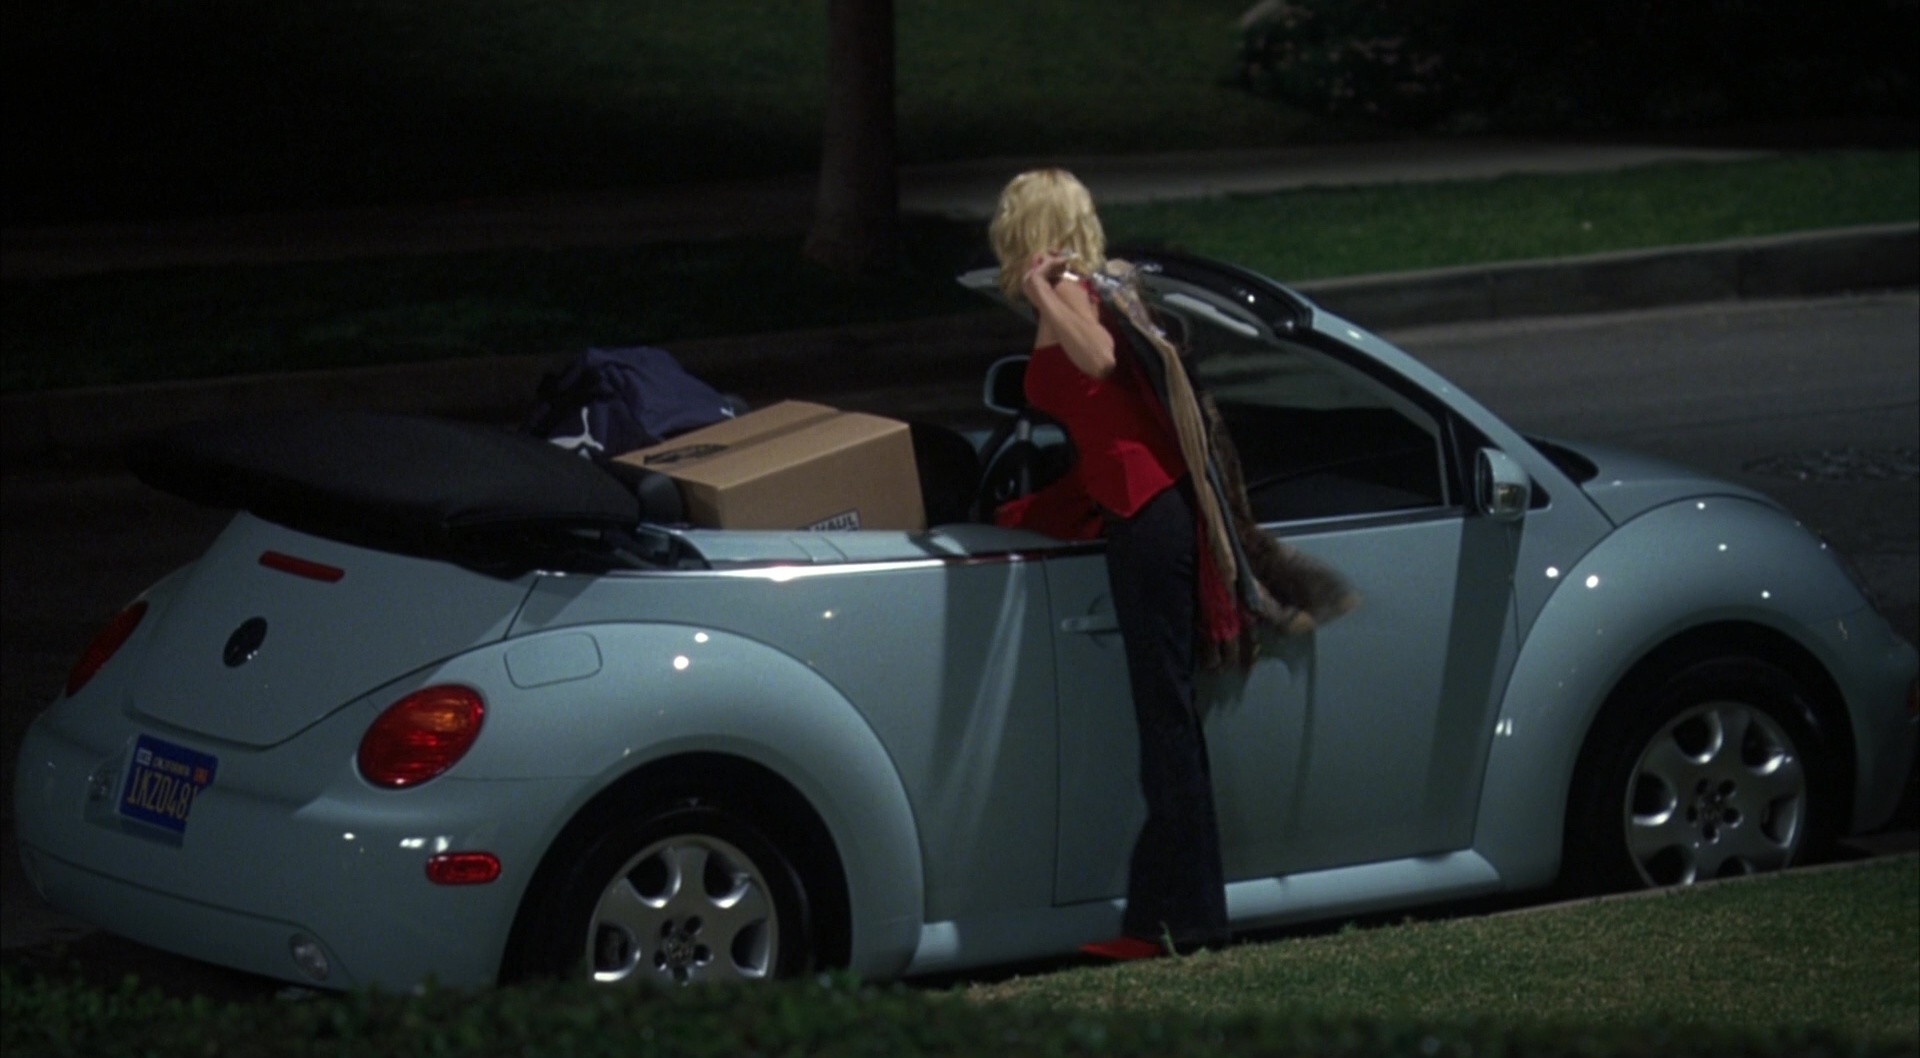 Volkswagen Beetle Cabriolet Car The Girl Next Door 2004